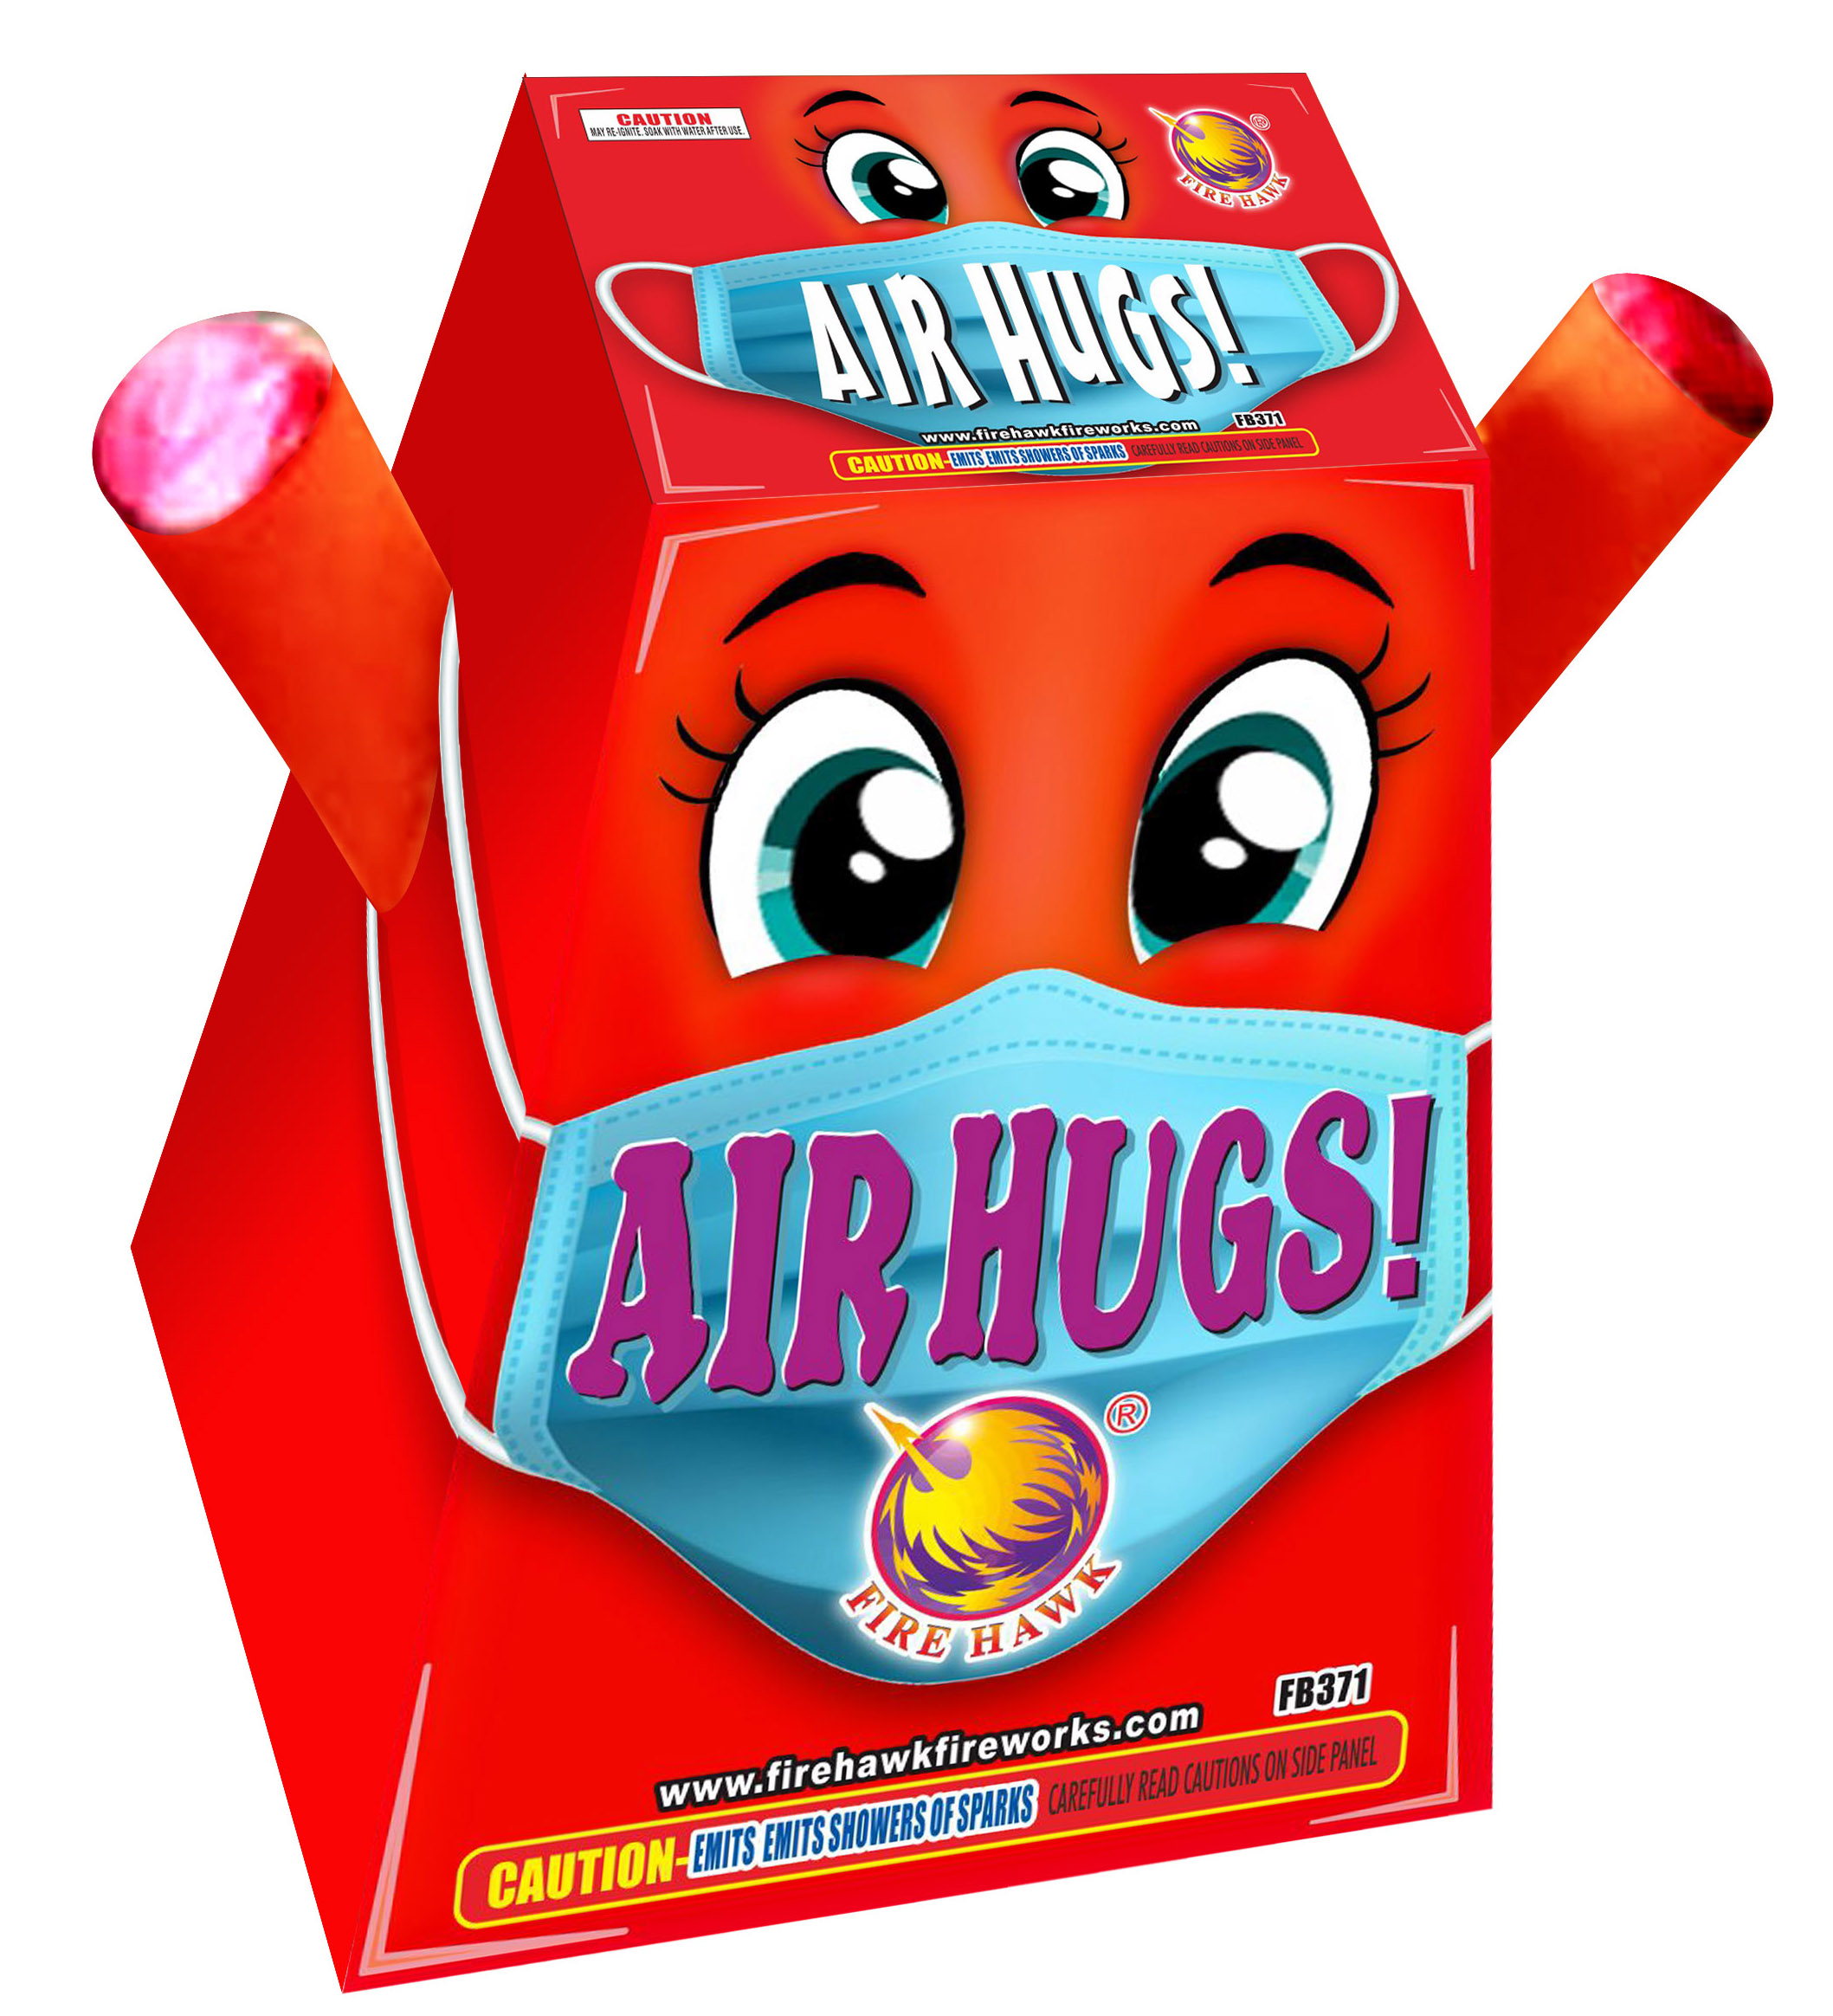 FB371 Air Hugs